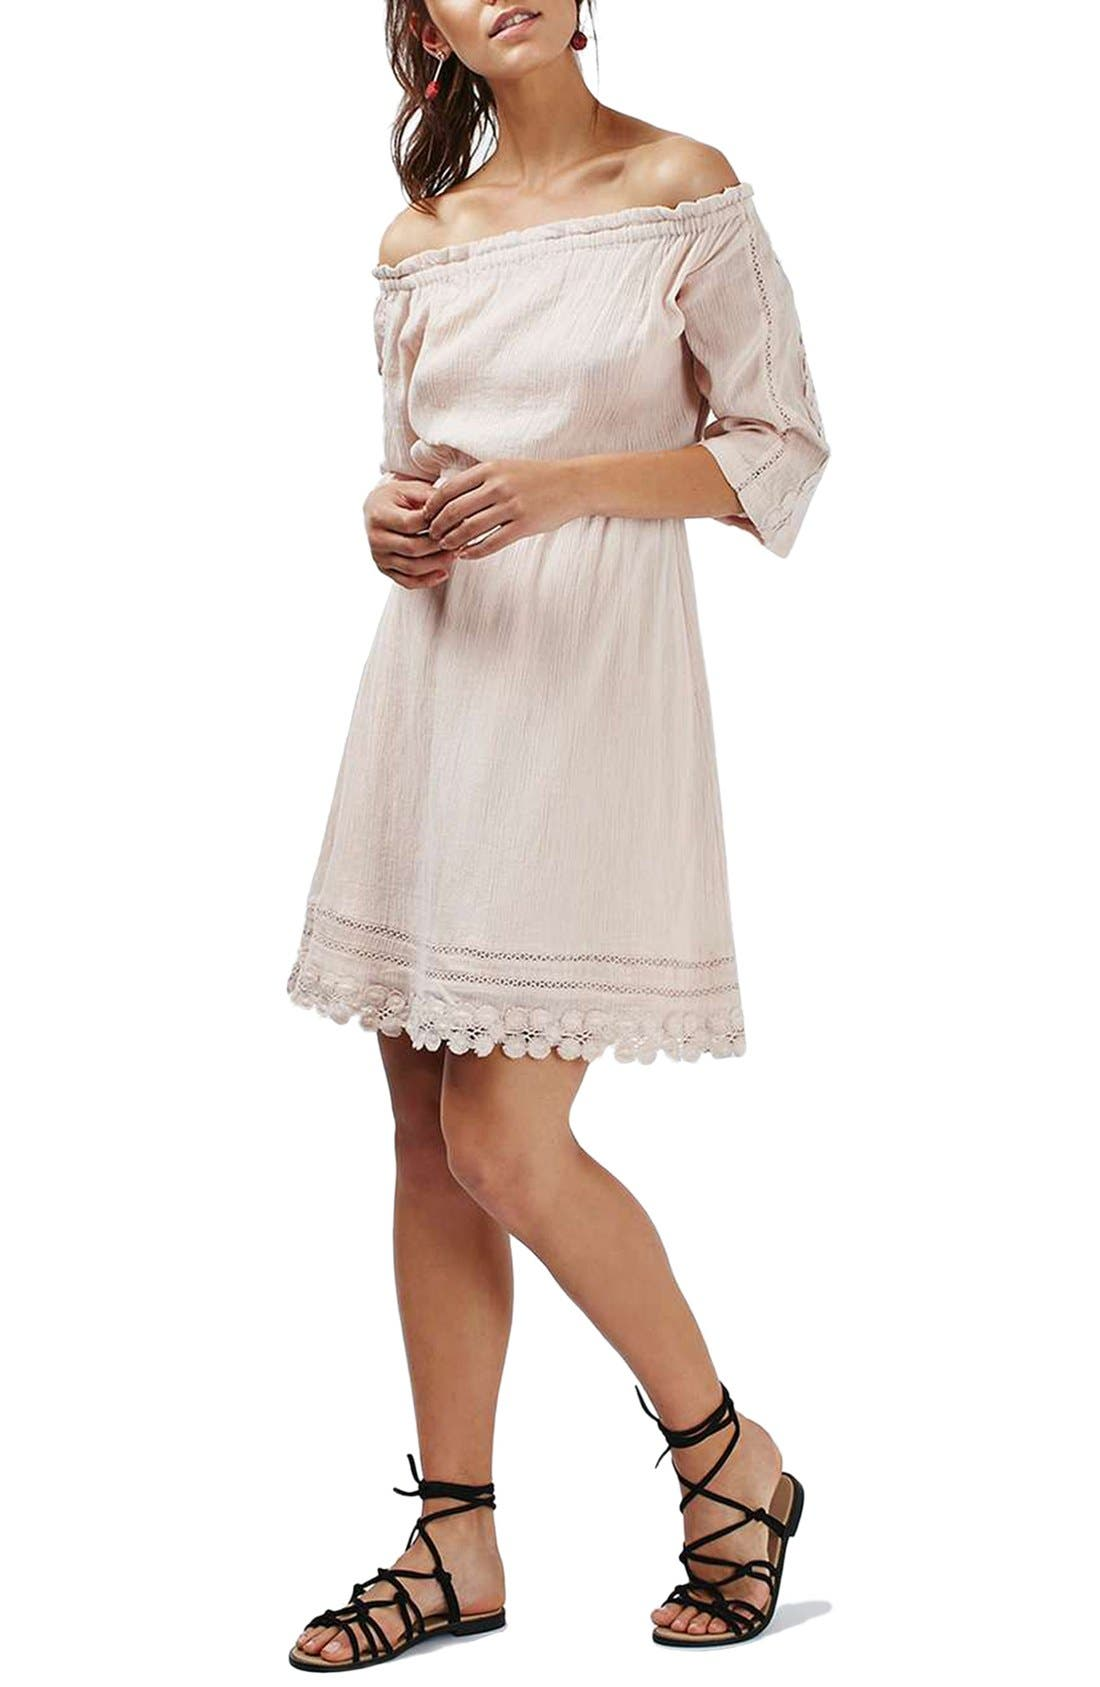 Alternate Image 1 Selected - Topshop Crochet Daisy Trim Off the Shoulder Dress